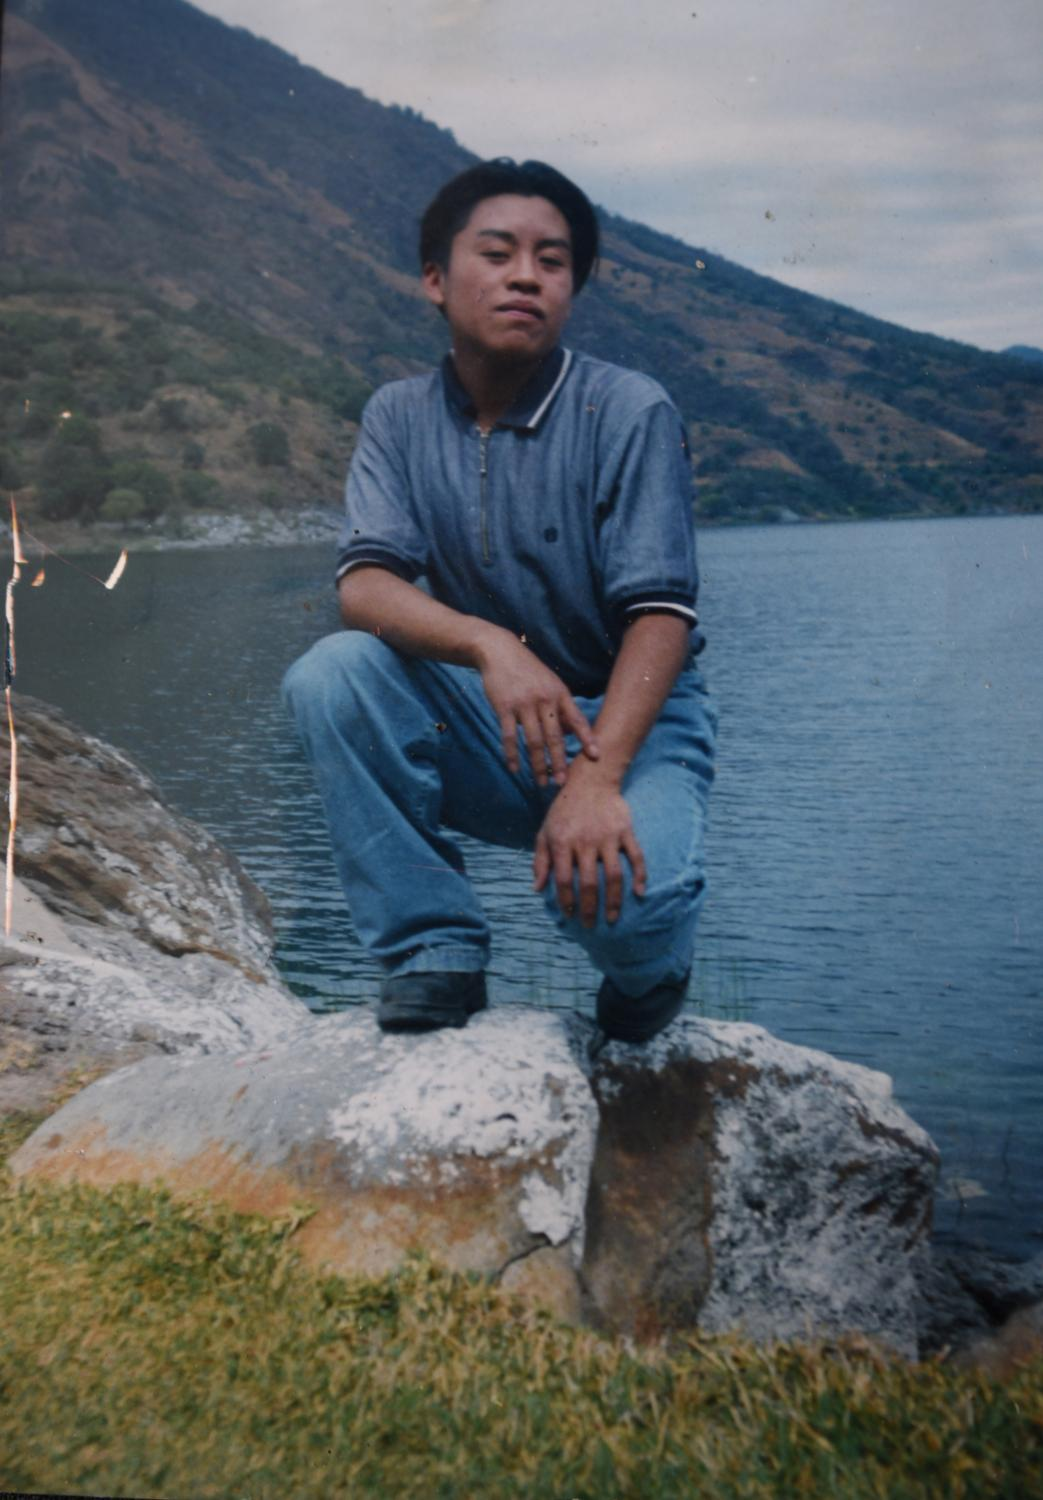 Photo archive 2005, Guatemala. Portrait of Juan Ratzan at the age of 22 in front of Lake Atitlan, in Guatemala. A few years later, Juan Ratzan decided to recognize his true identity and changed his name to María Alejandra, known to her friends as La China.